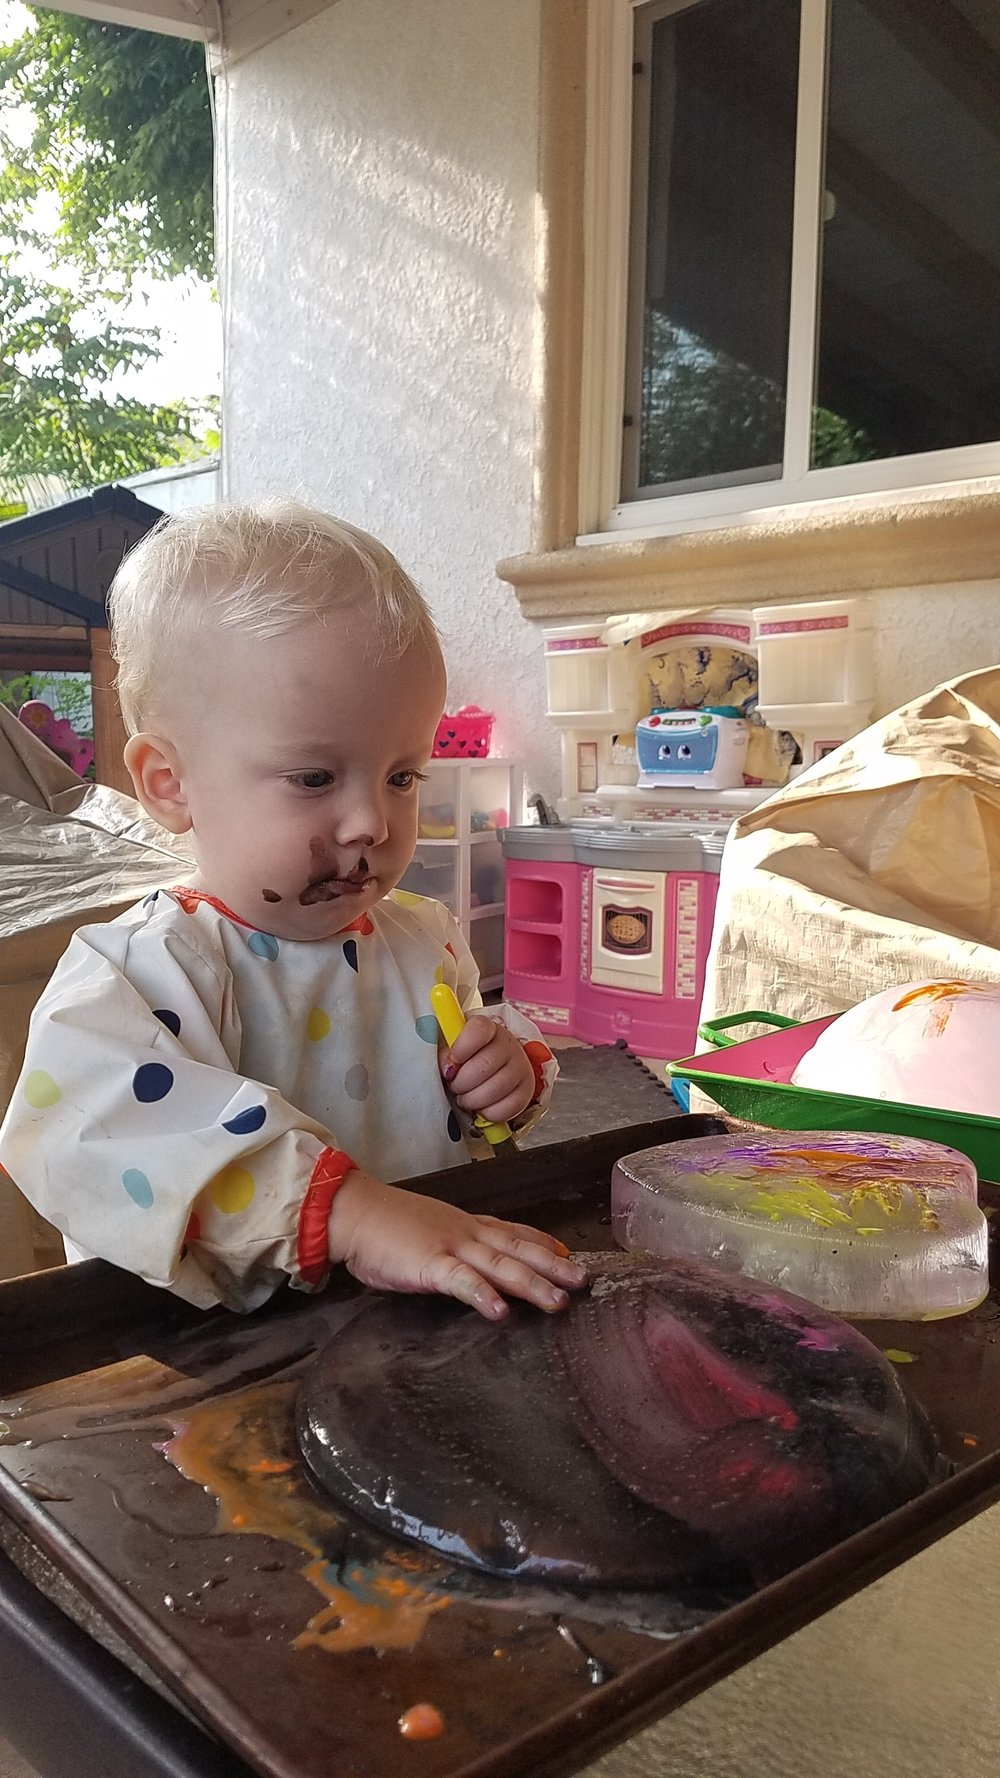 Using his hands to paint, while holding the paintbrush in his other hand.